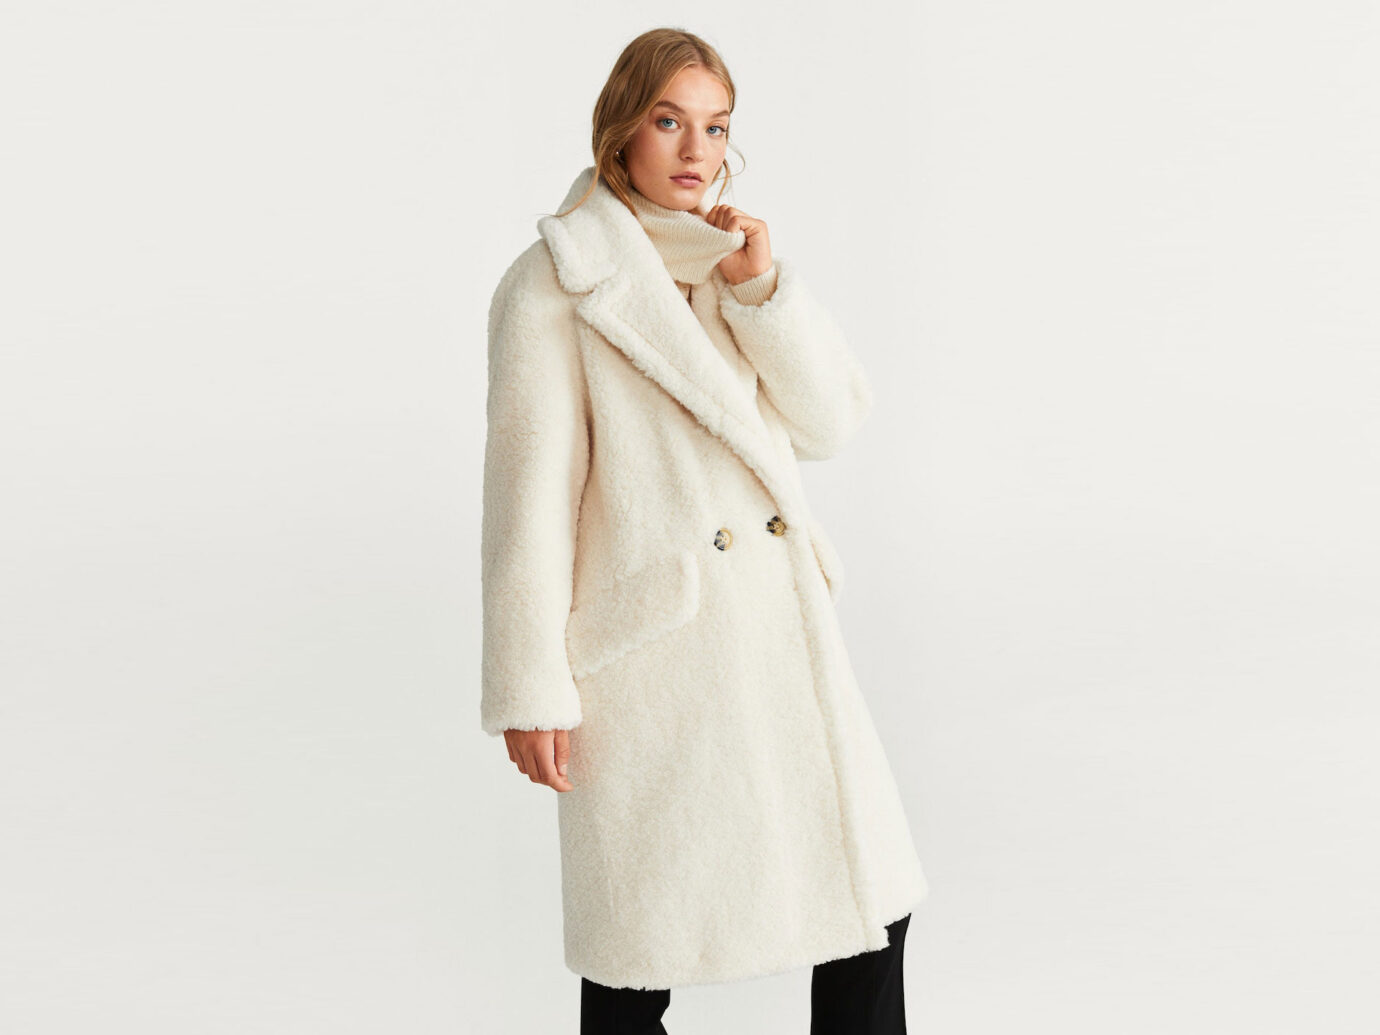 How to choose your first coat for winter